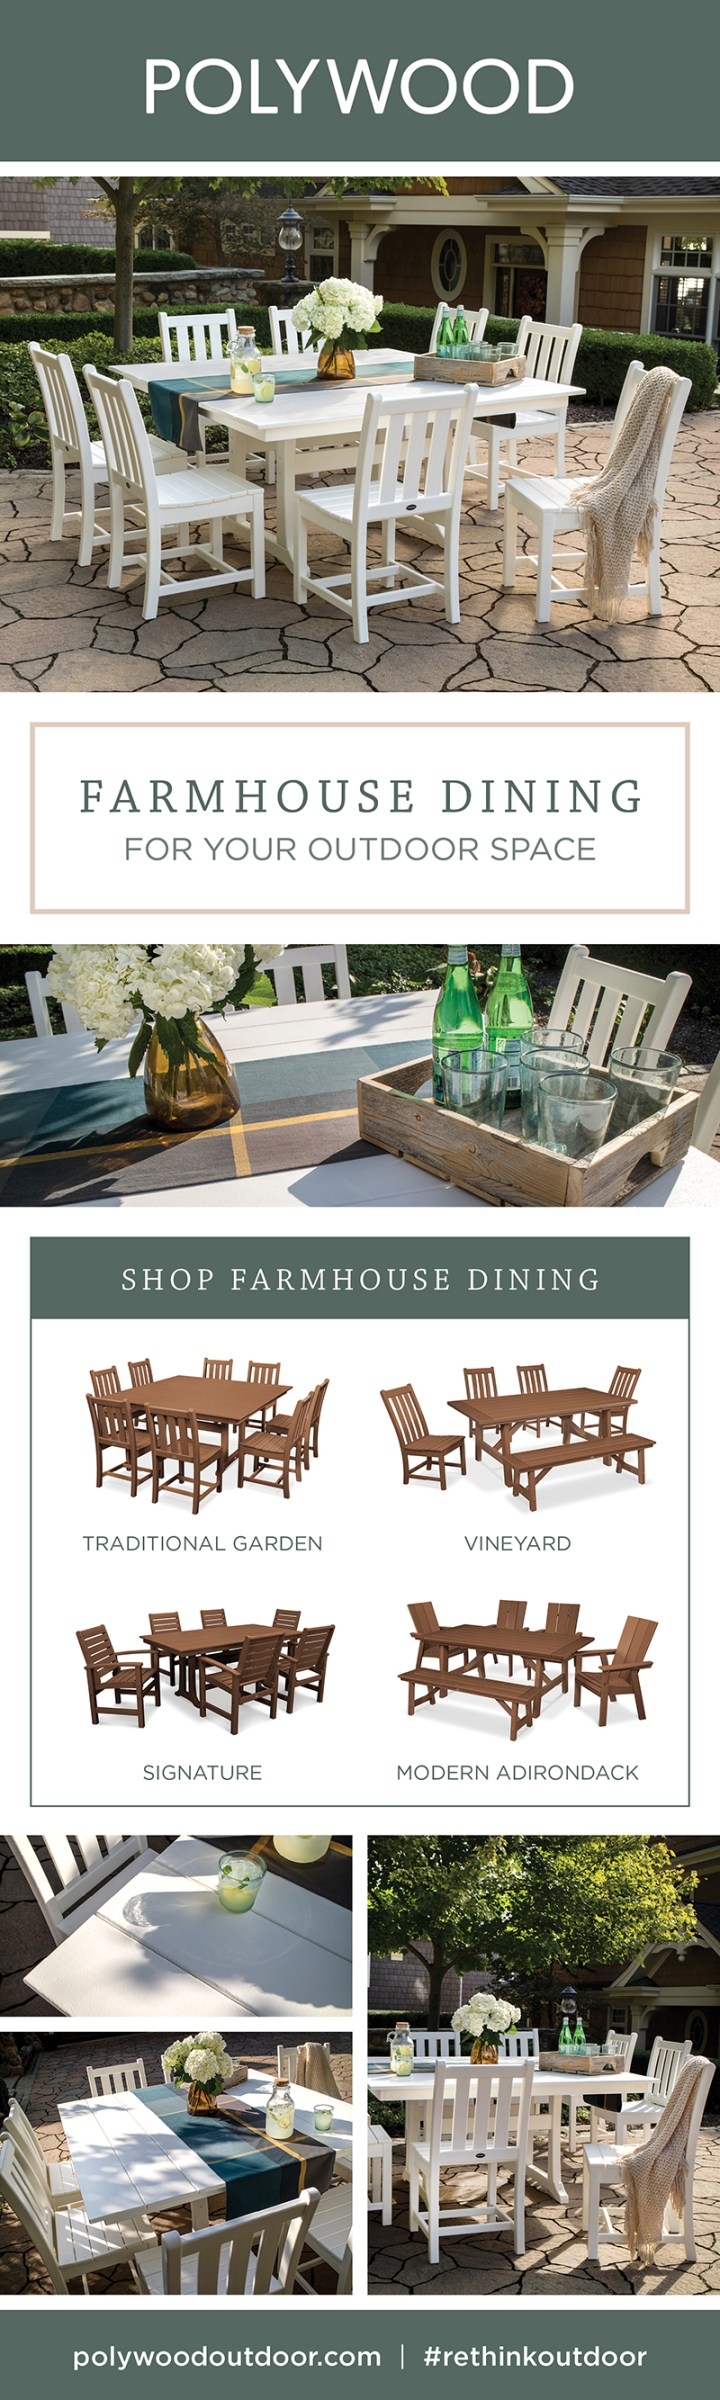 outdoor farmhouse dining table with flowers